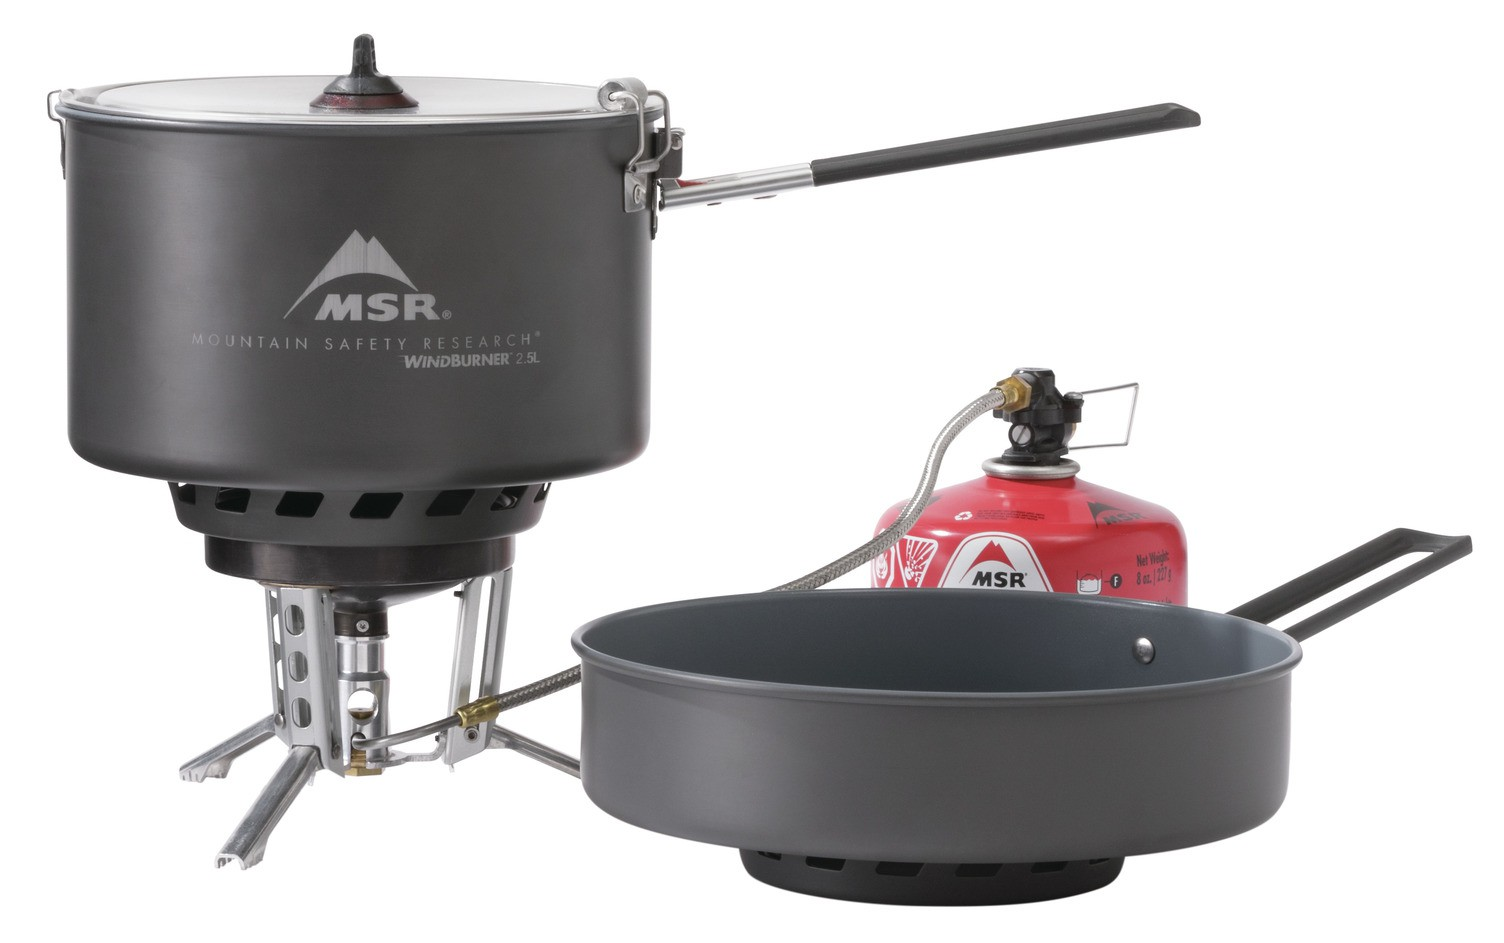 Msr WindBurner Group System